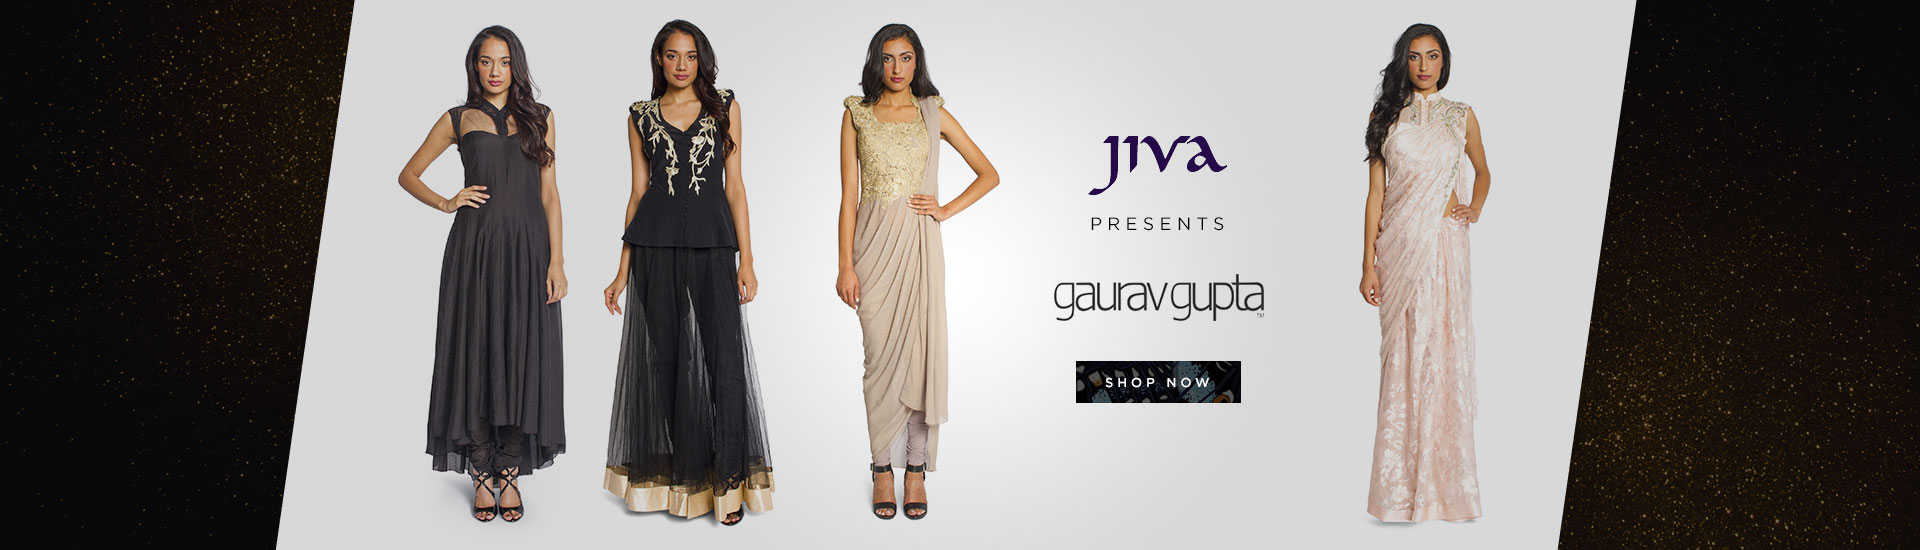 Designer Clothing by Gaurav Gupta